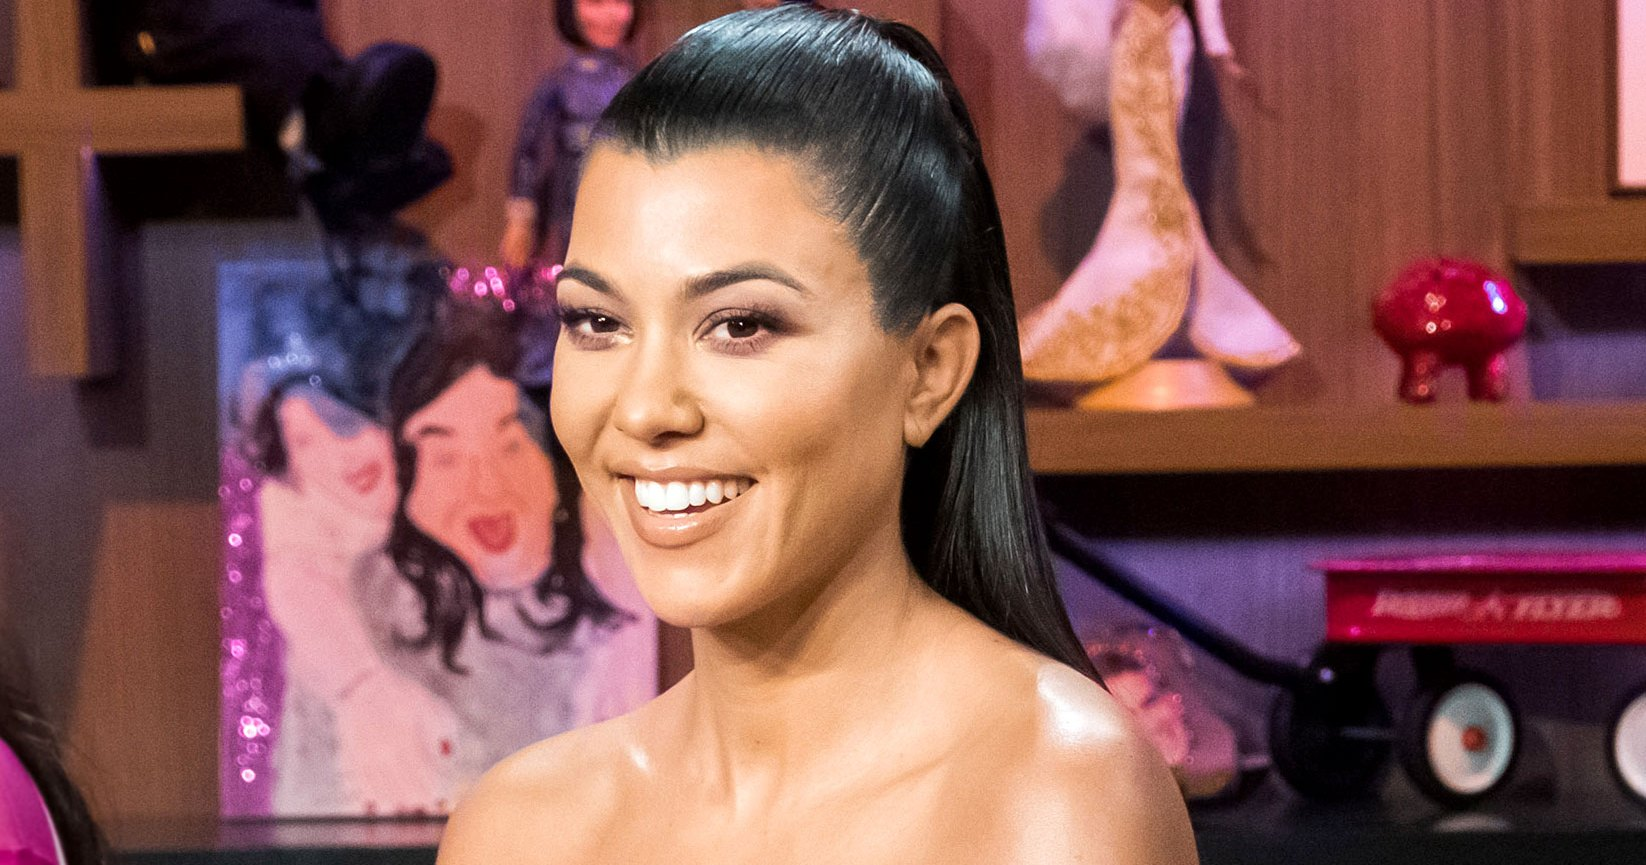 Kourtney Kardashian Says She Wants 'to Be in Love' After Vacationing With Luka Sabbat